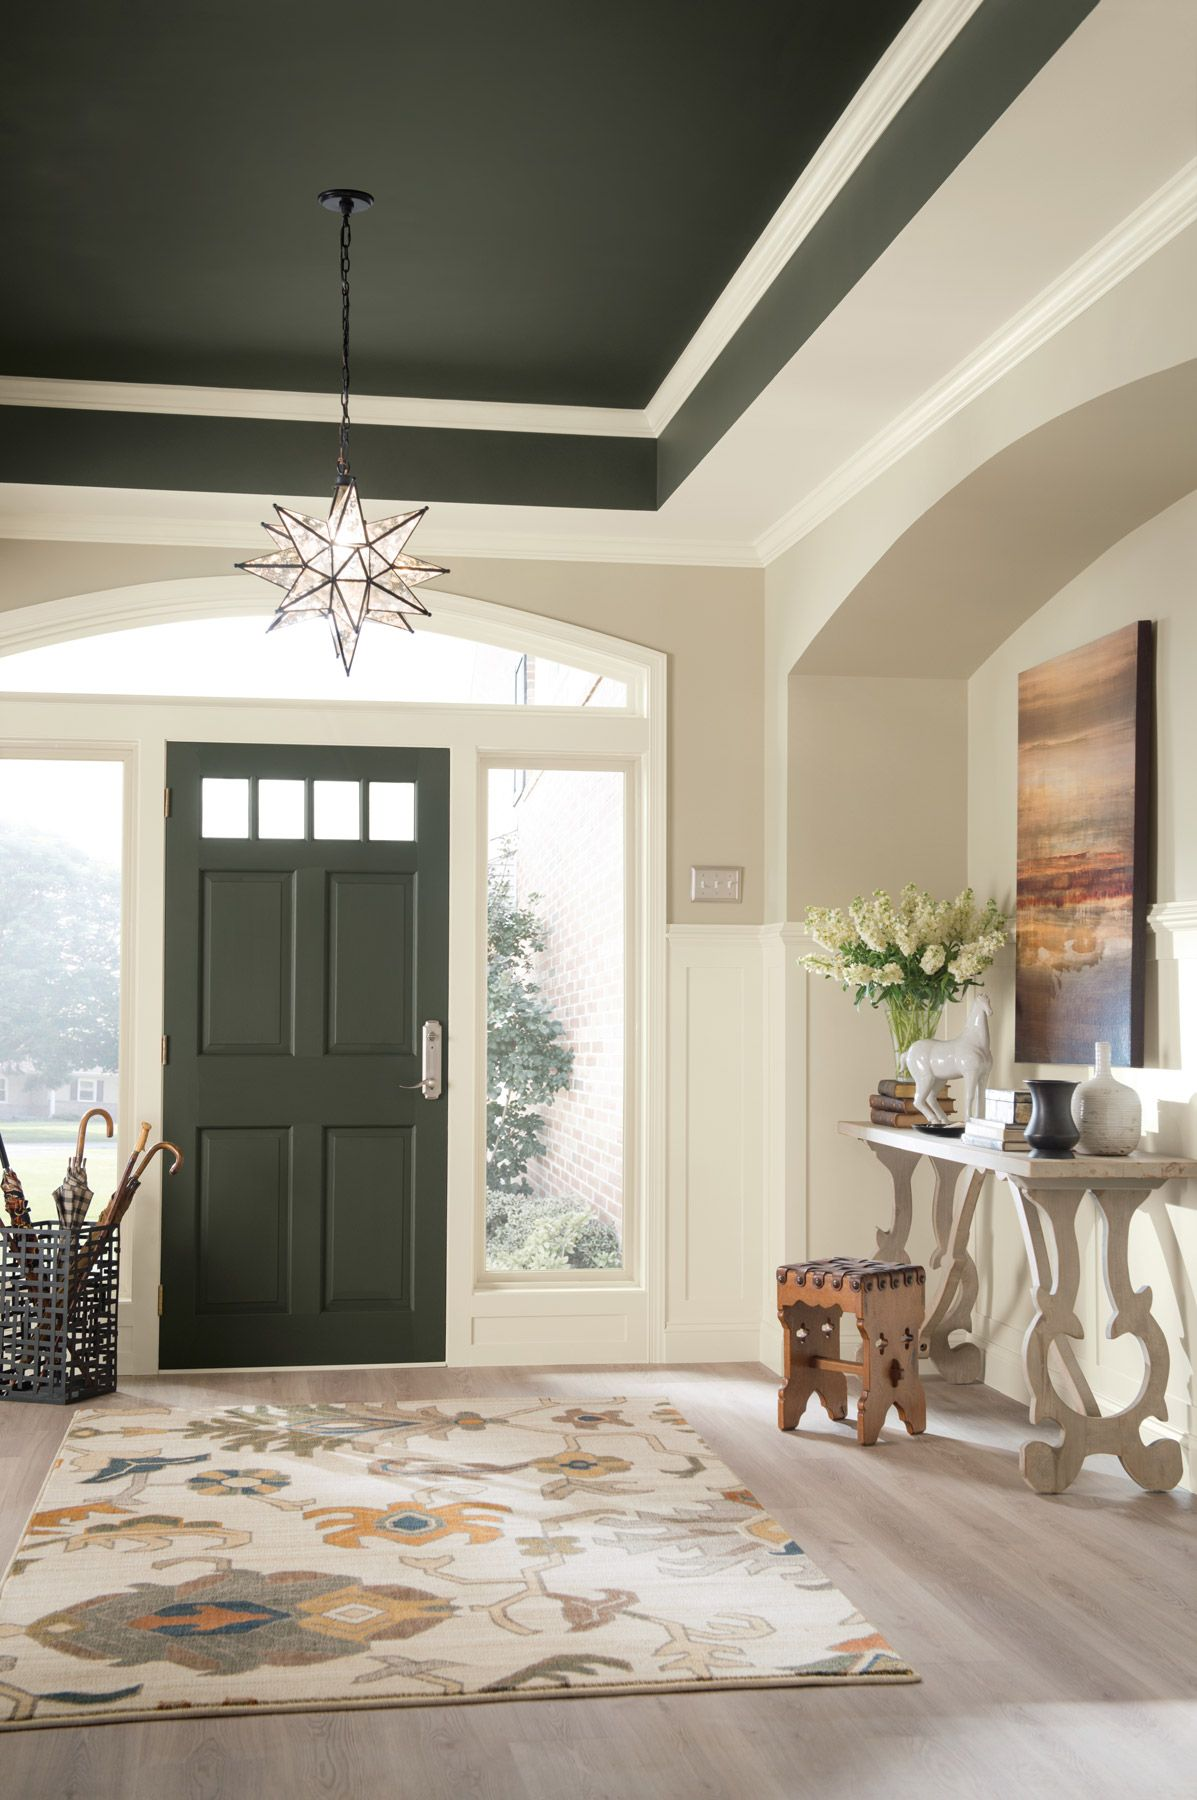 5 Inspiring Entryway Ideas That Make A Good First Impression Colored Ceiling Foyer Colors Ceiling Paint Colors